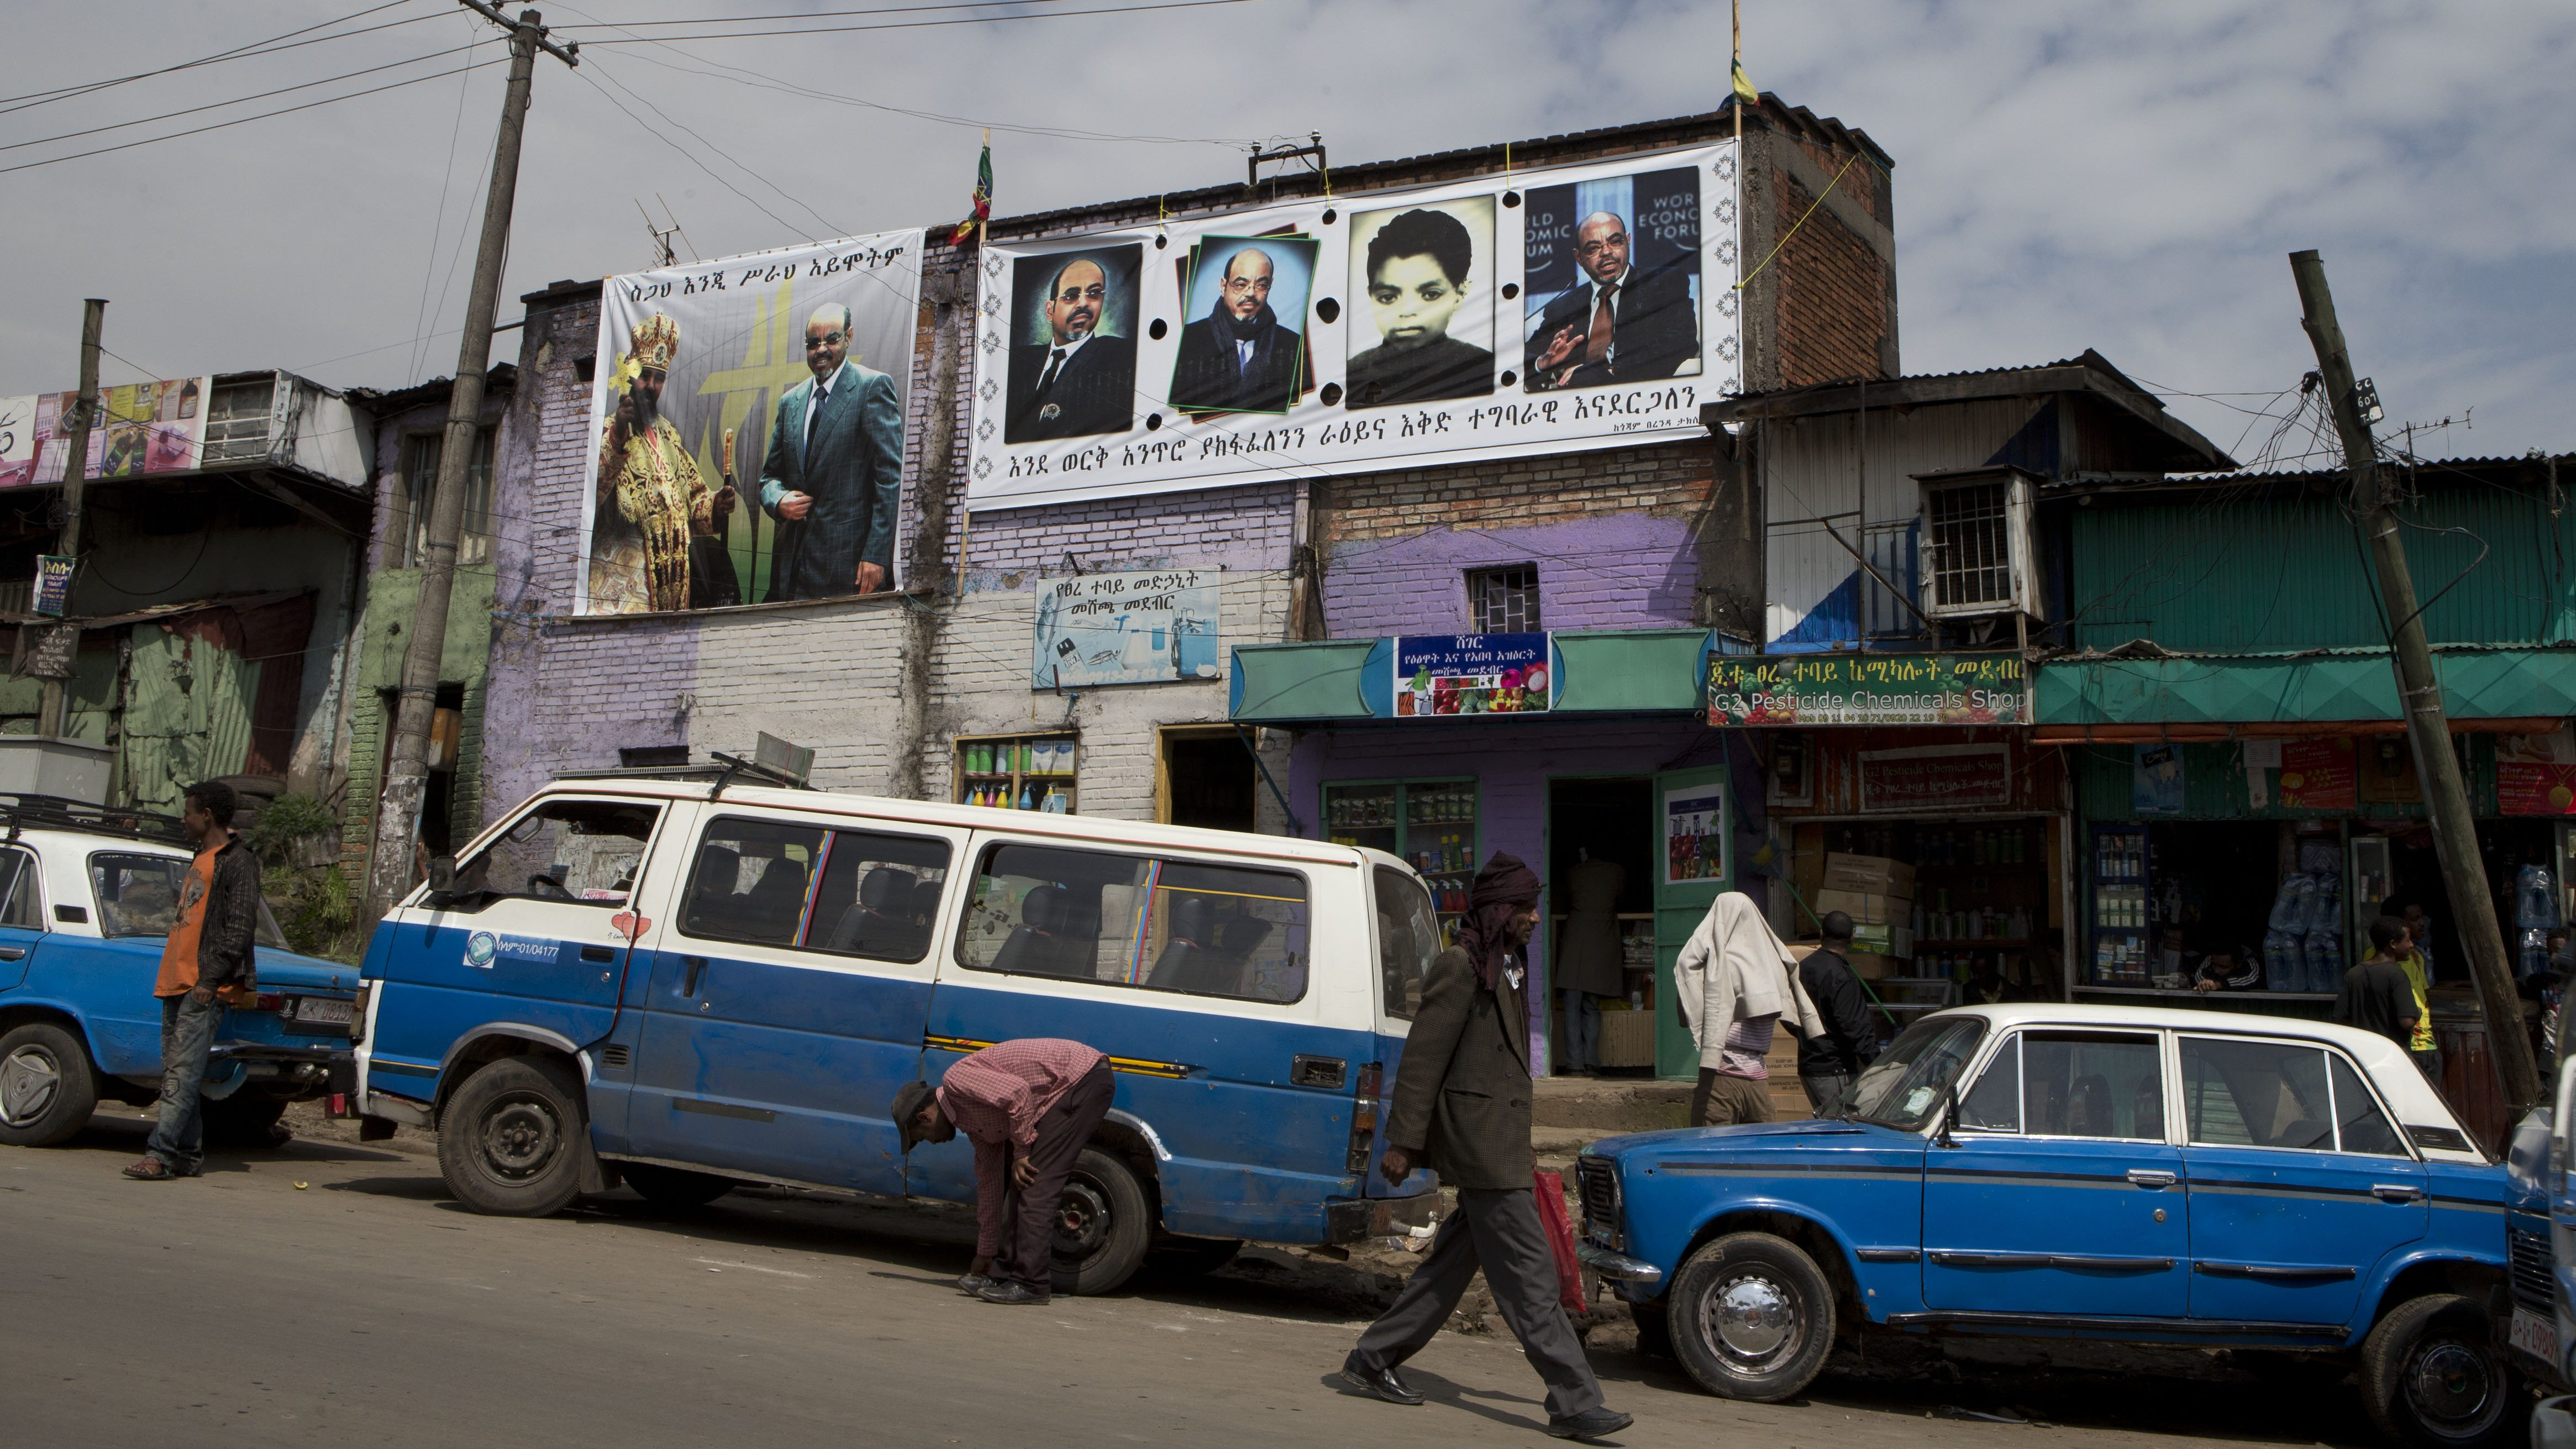 Taxis and a public transport minibus sit parked along an Addis Ababa street in 2012.